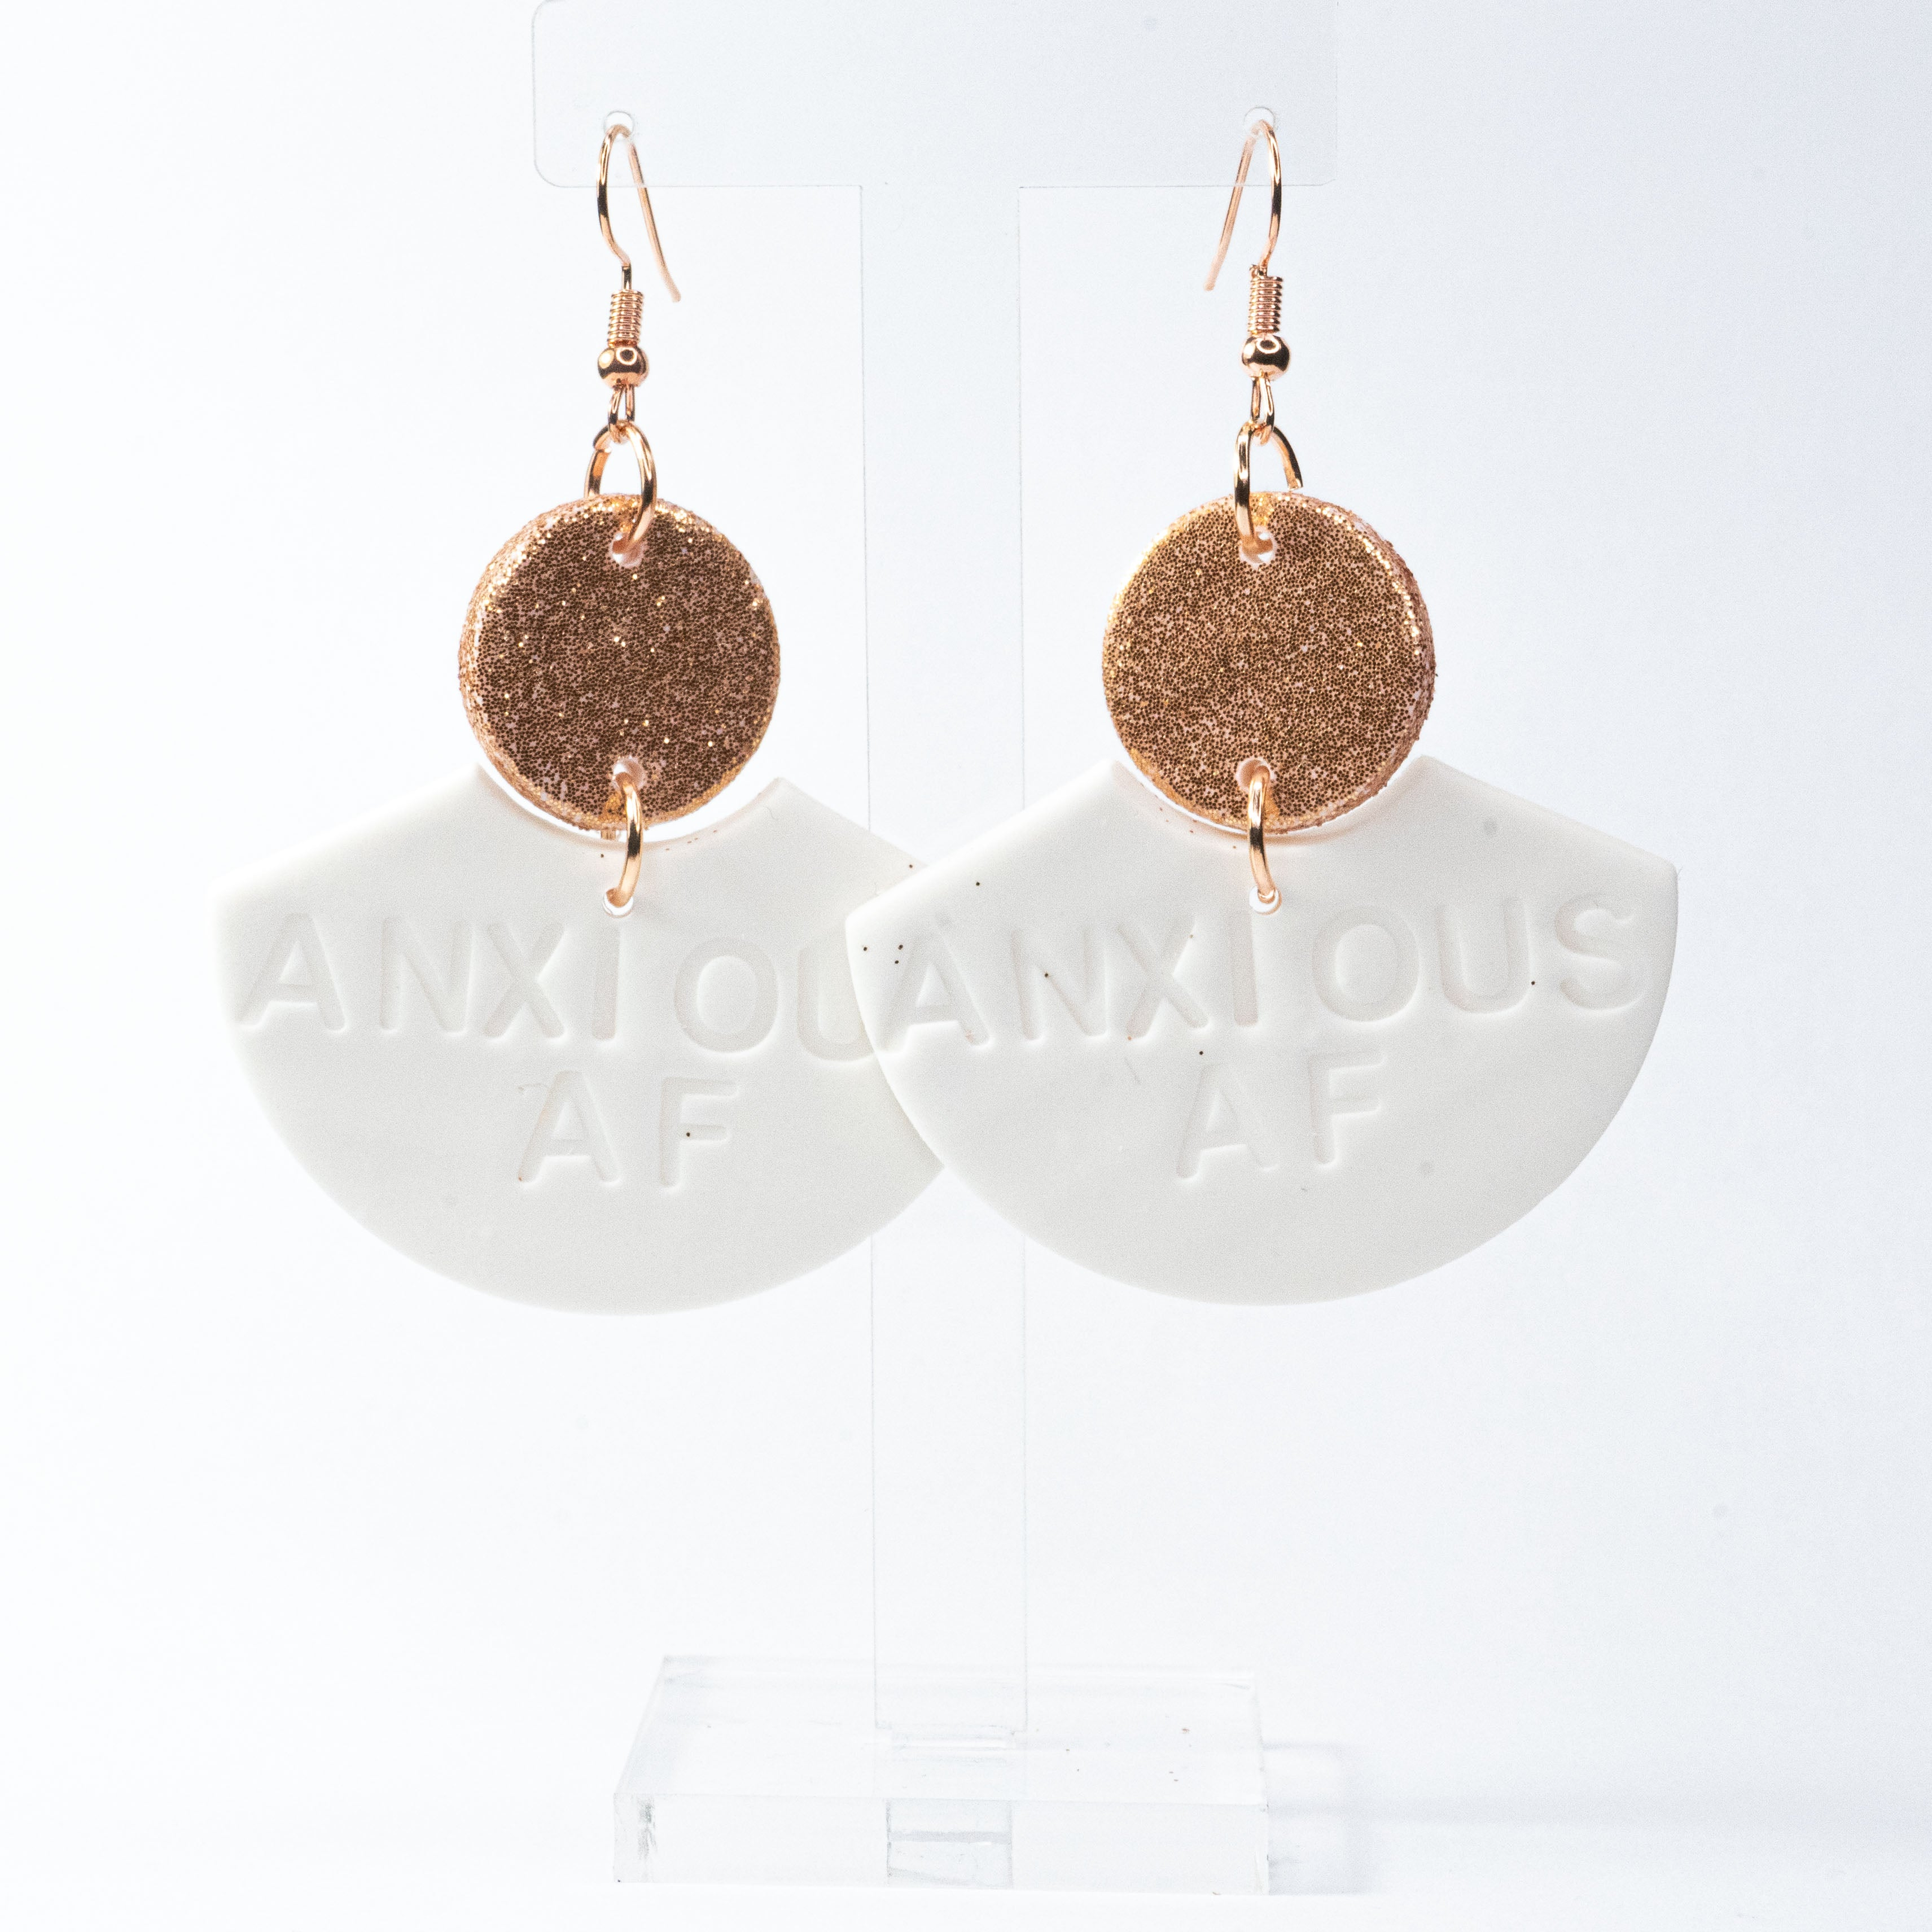 Anxious Text Dangles (pre-order)